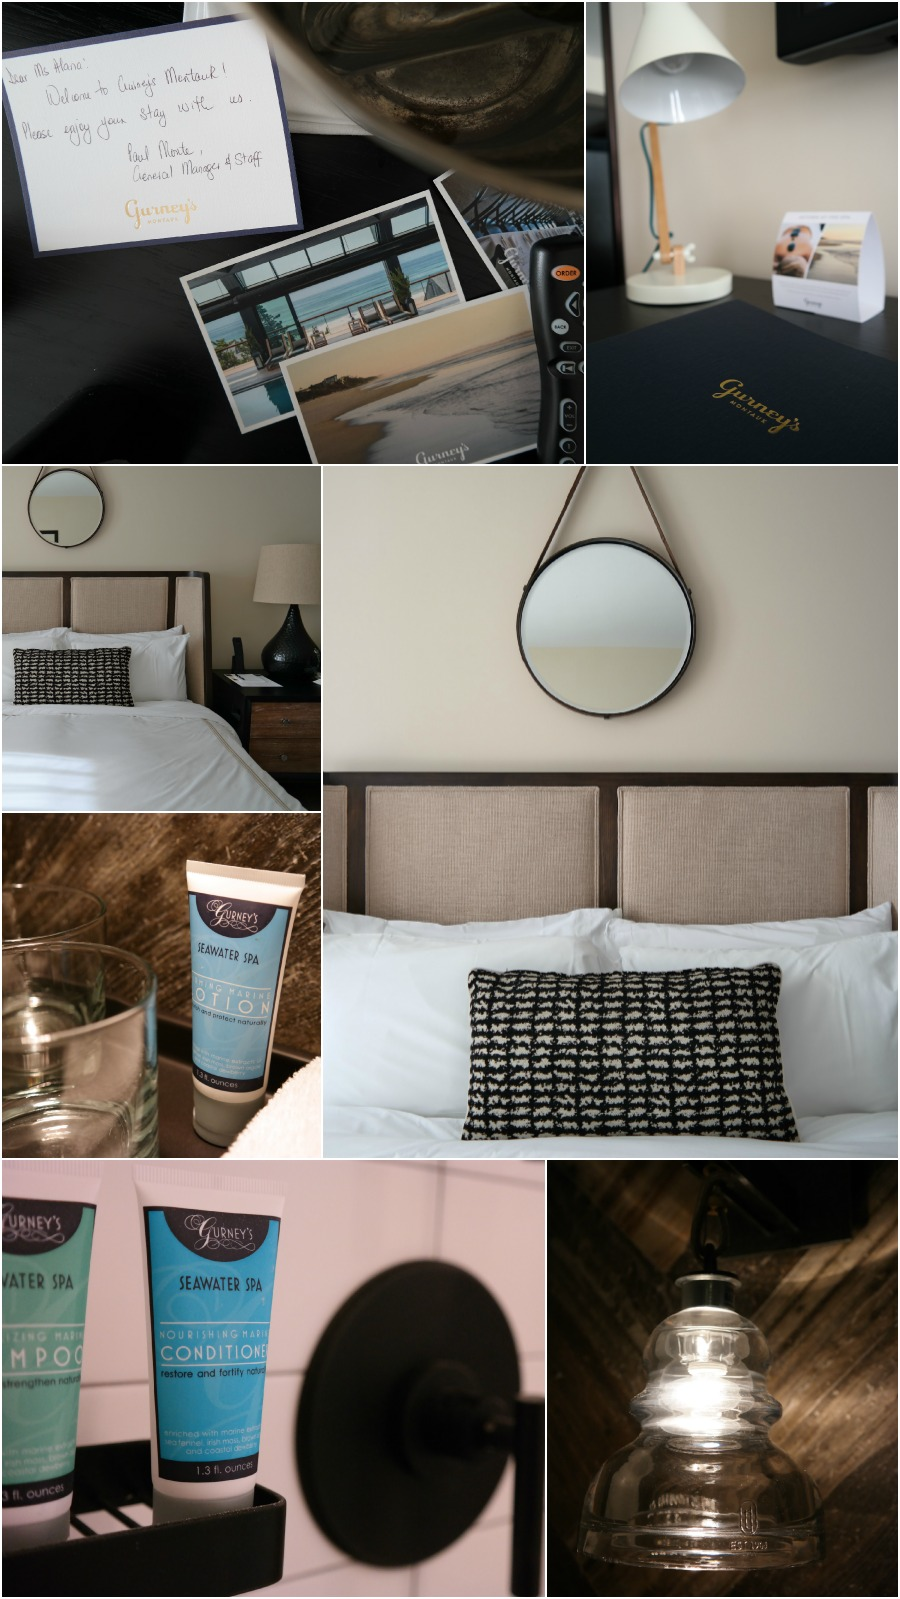 gurneysbedroomcollage